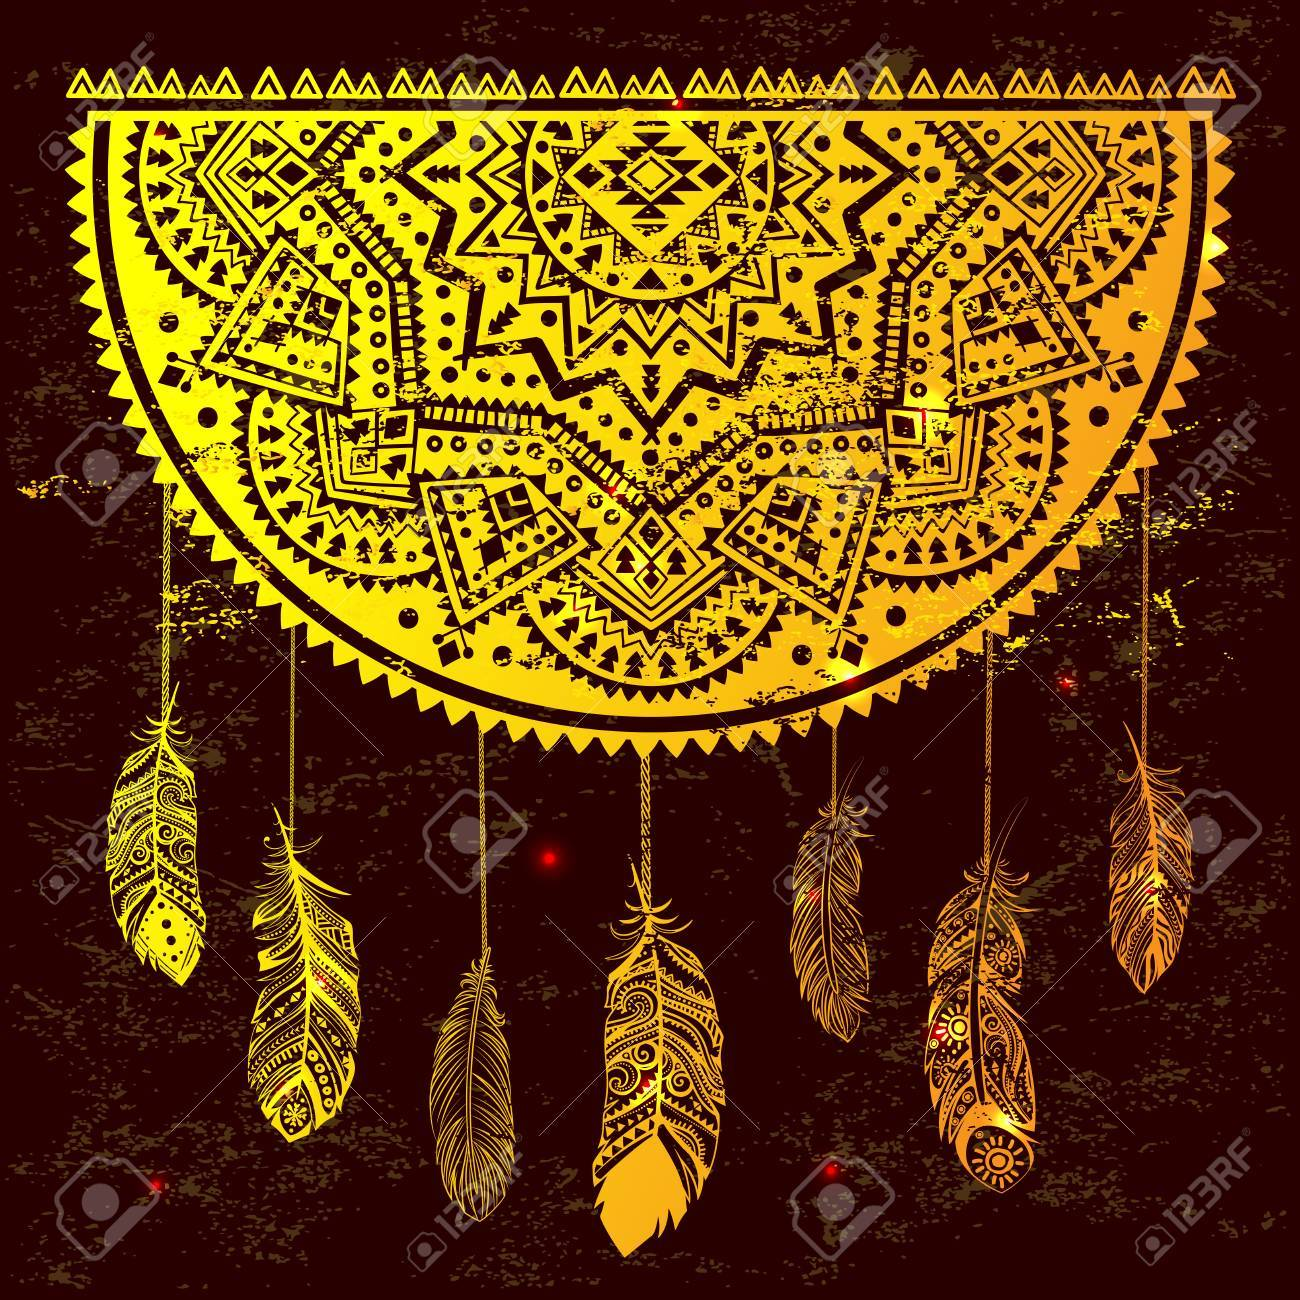 Ethnic american indian dream catcher can be used as a greeting ethnic american indian dream catcher can be used as a greeting card stock vector 59891236 m4hsunfo